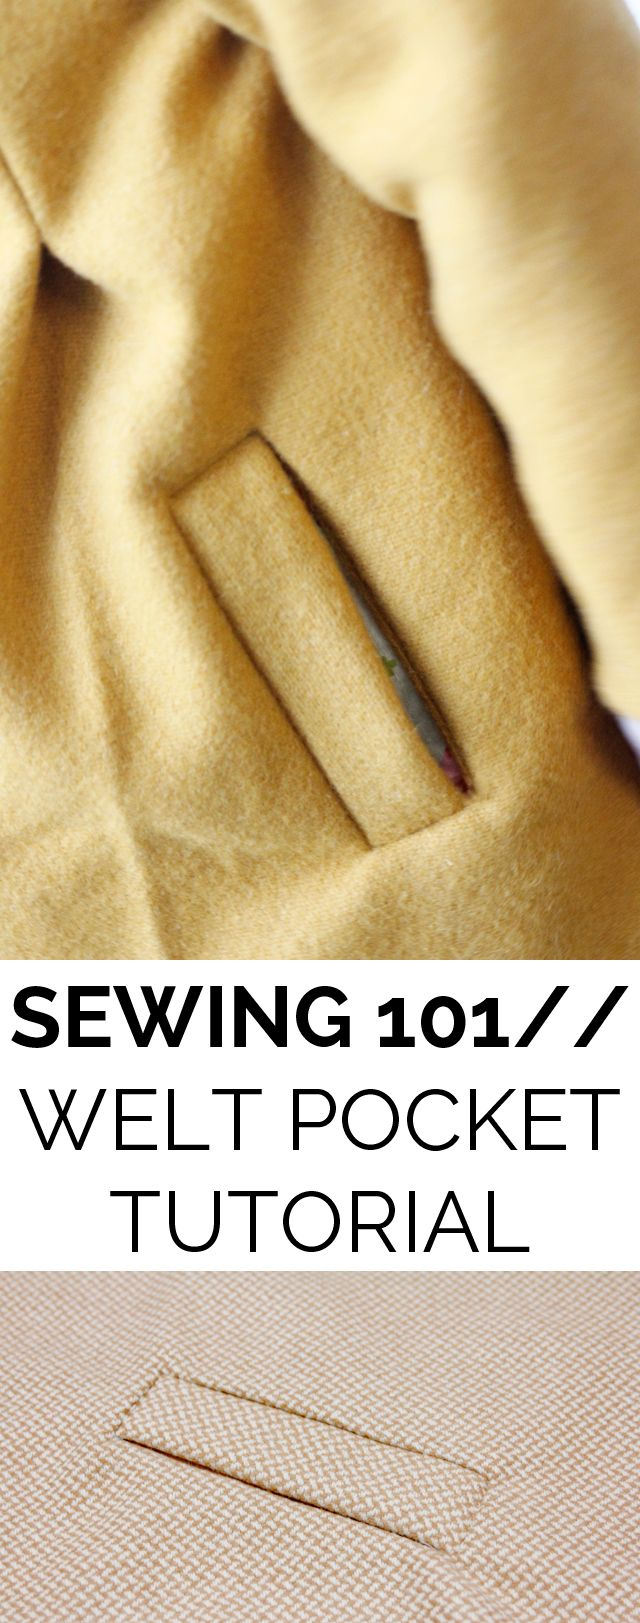 Sewing 101: Welt Pocket Tutorial